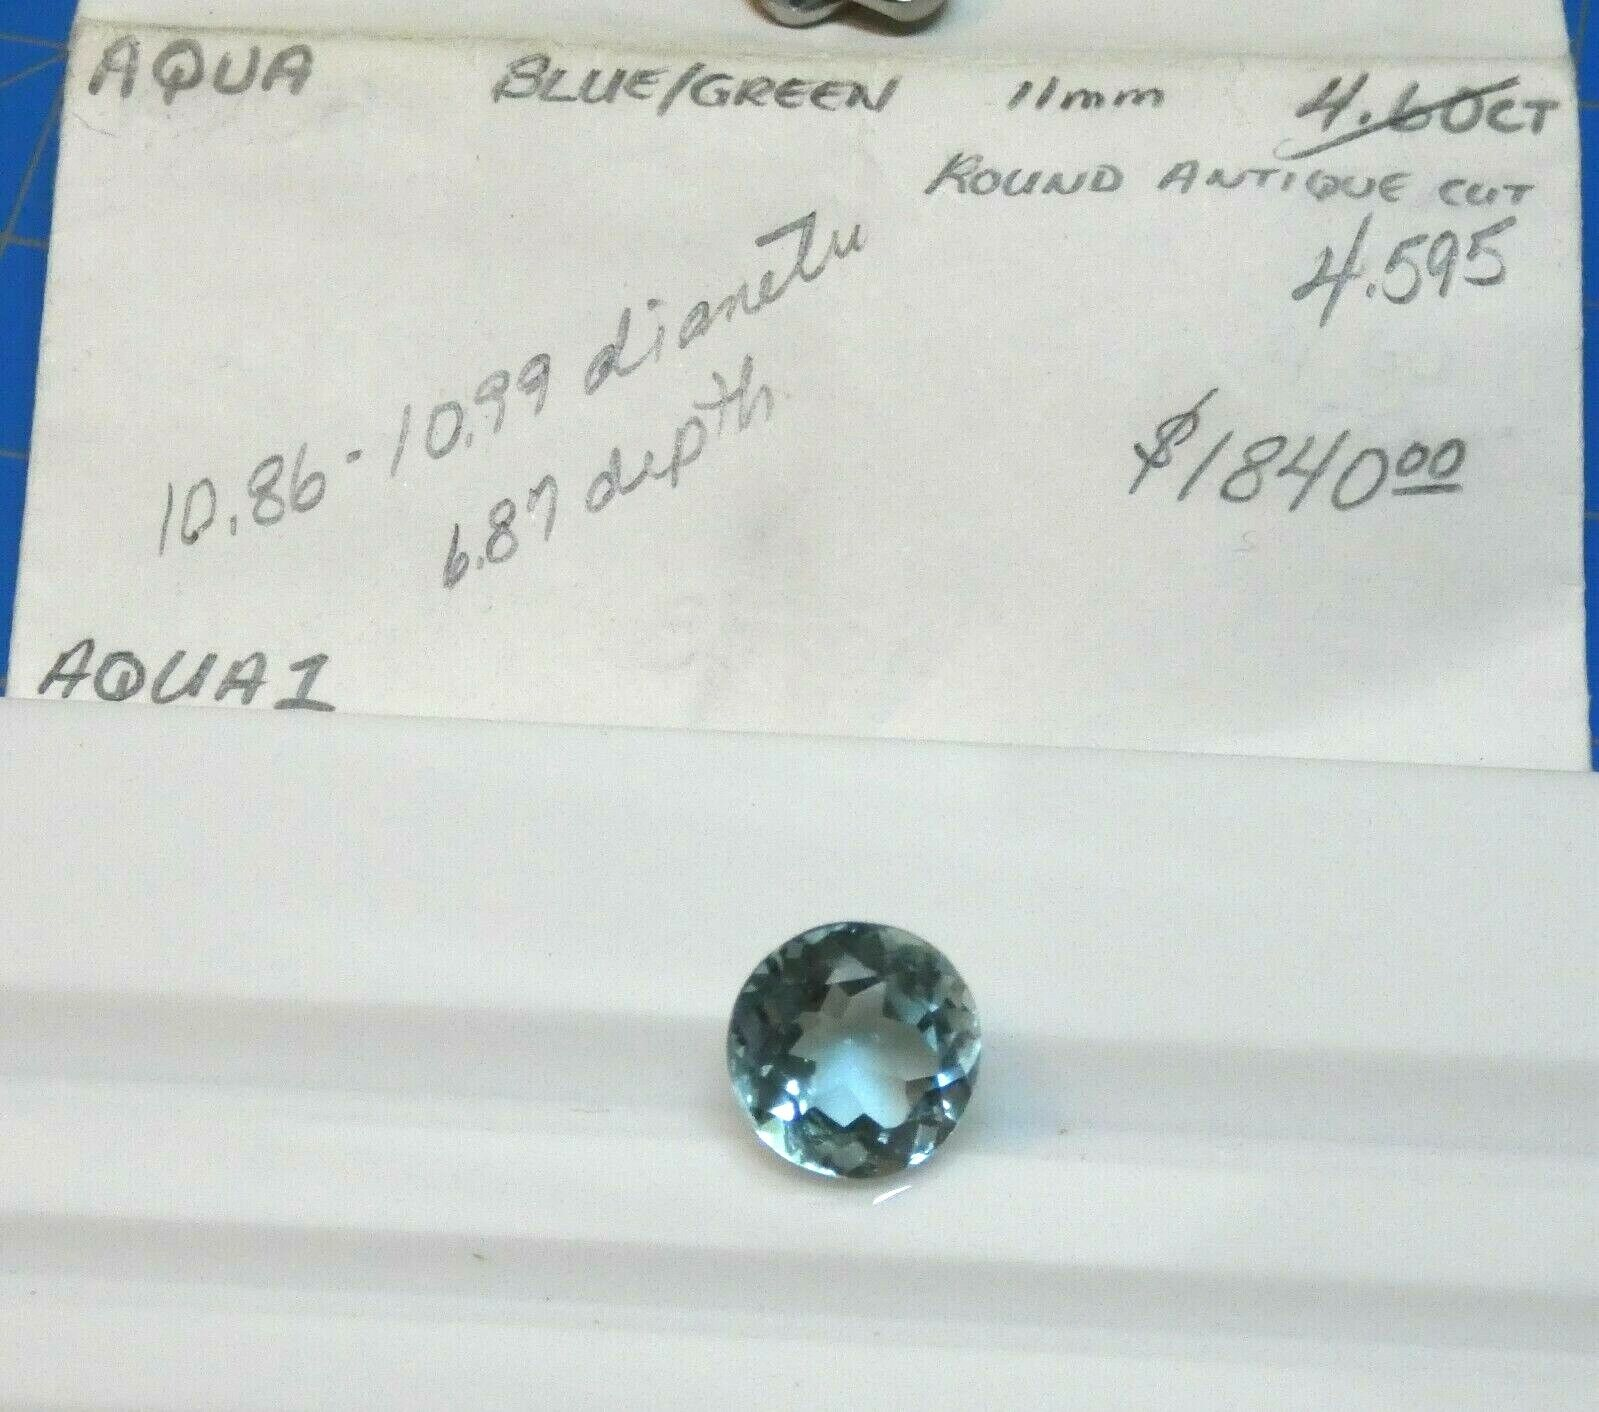 4.60 Carat AQUAMARINE ROUND Old Stock From The 80 s 11mm  - $297.99